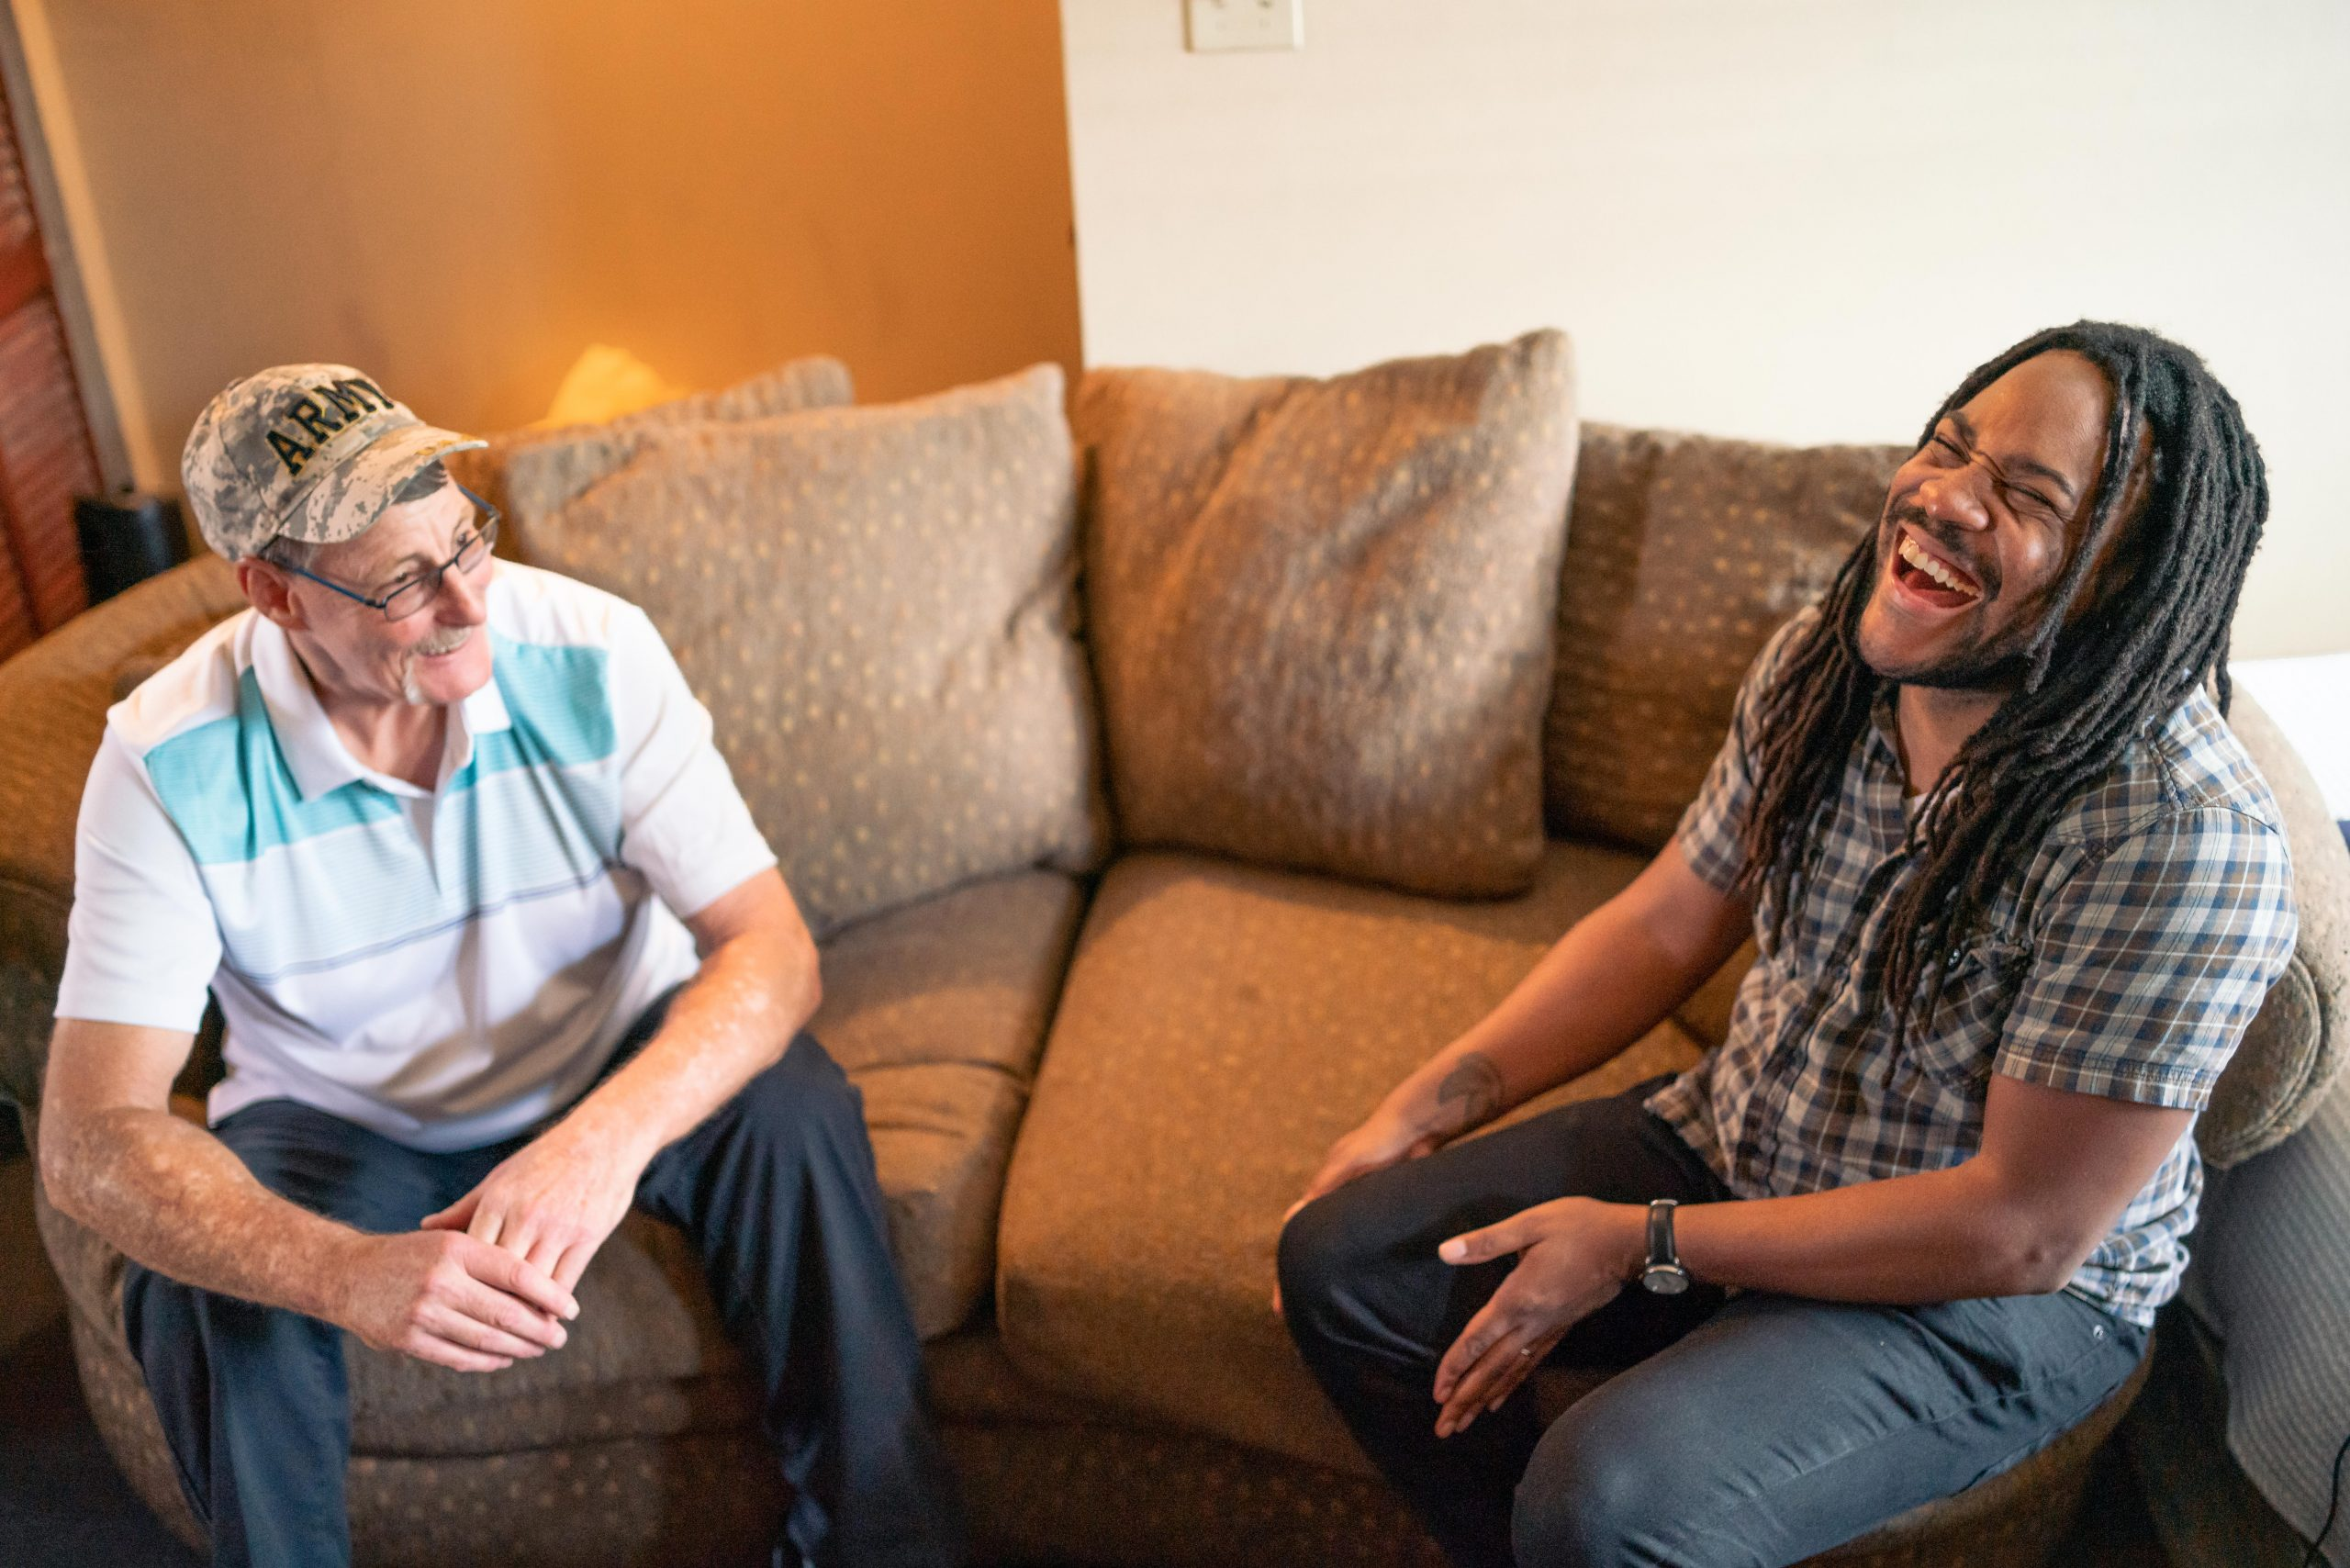 Former IDignity clients Chris and Rahsaan laughing over a conversation together.